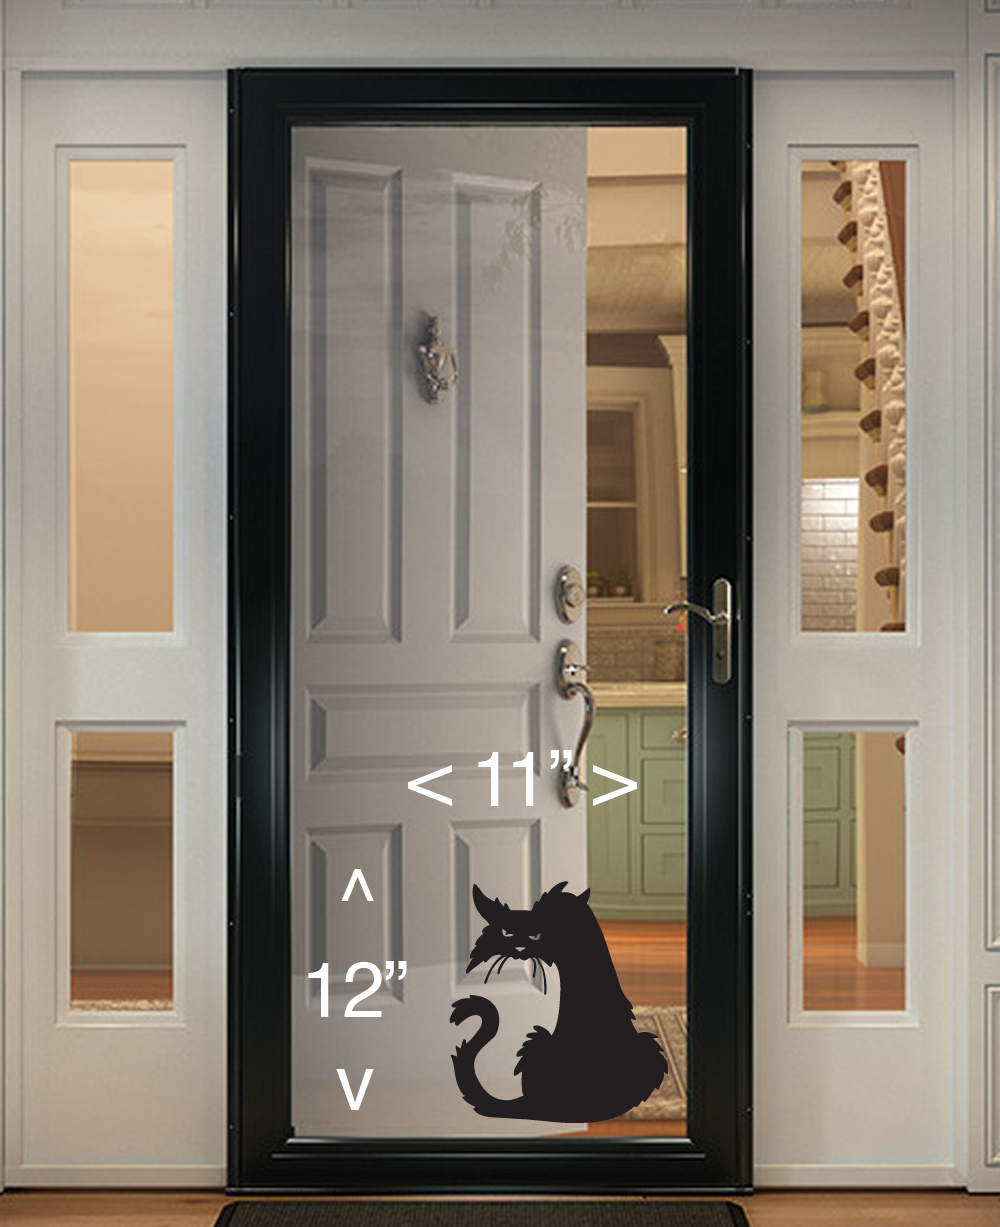 Home Decoration - Scary Cat Halloween Wall Window Decal Vinyl Sticker Decor  Horror Scary